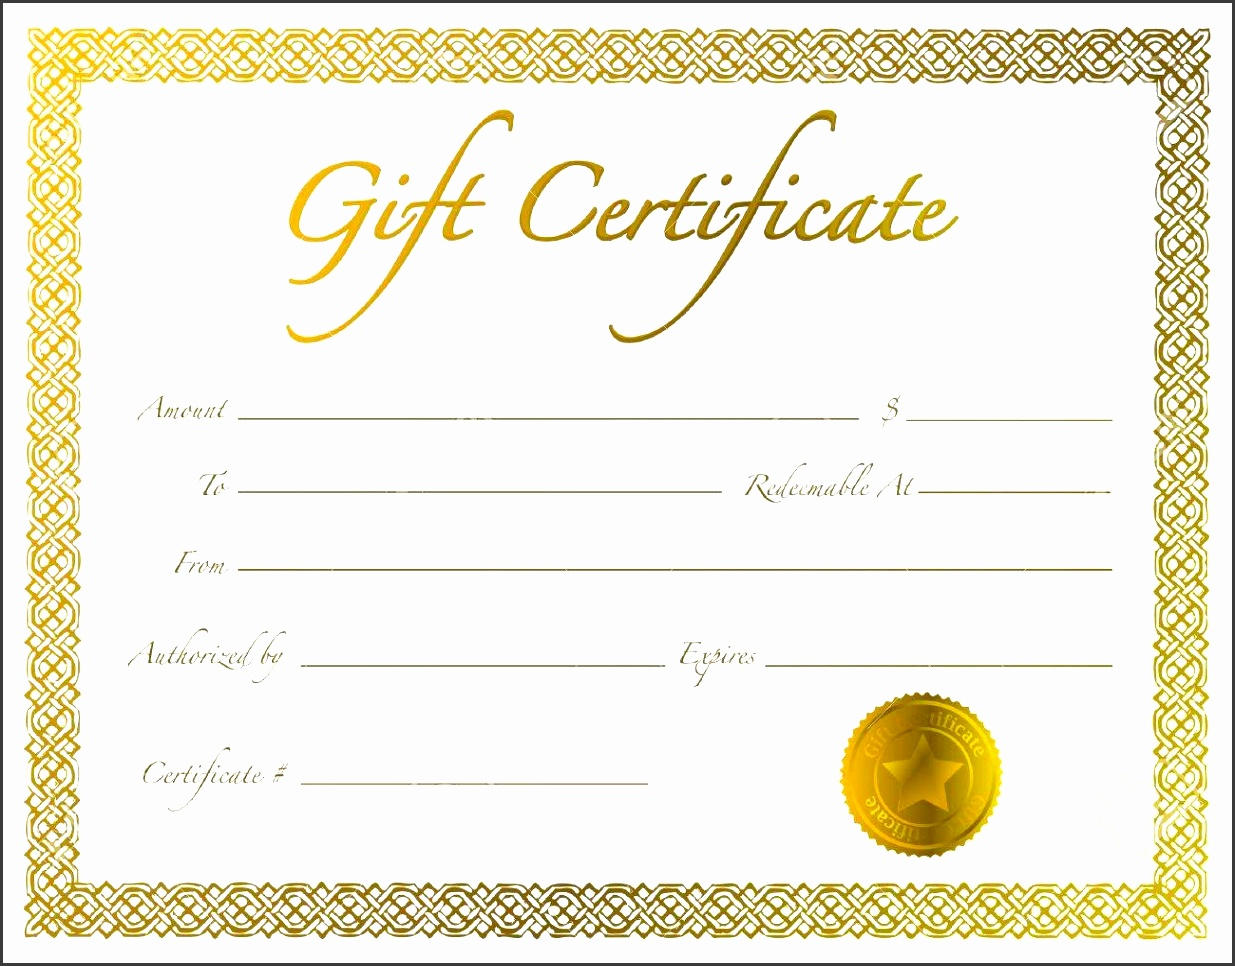 10 gift voucher template in editable form sampletemplatess t certificate form free blank t certificate template 100 holiday t certificate template t voucher template alramifo Images